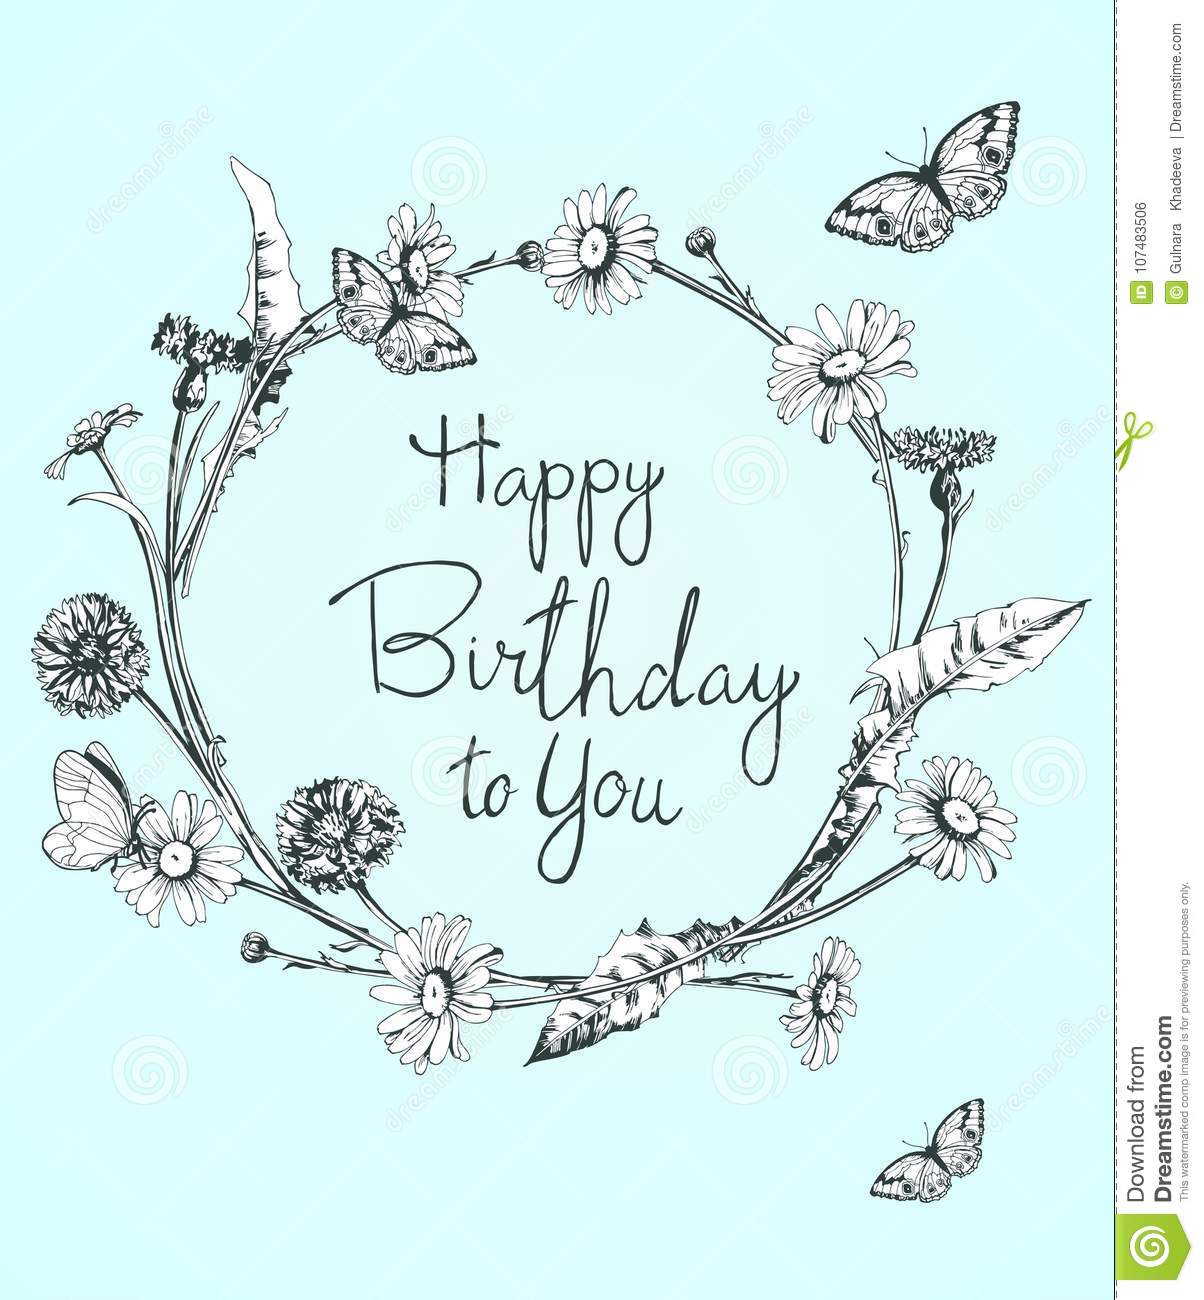 Beautiful Birthday Card With Floral Wreath Bright Illustration Can Be Used As Creating